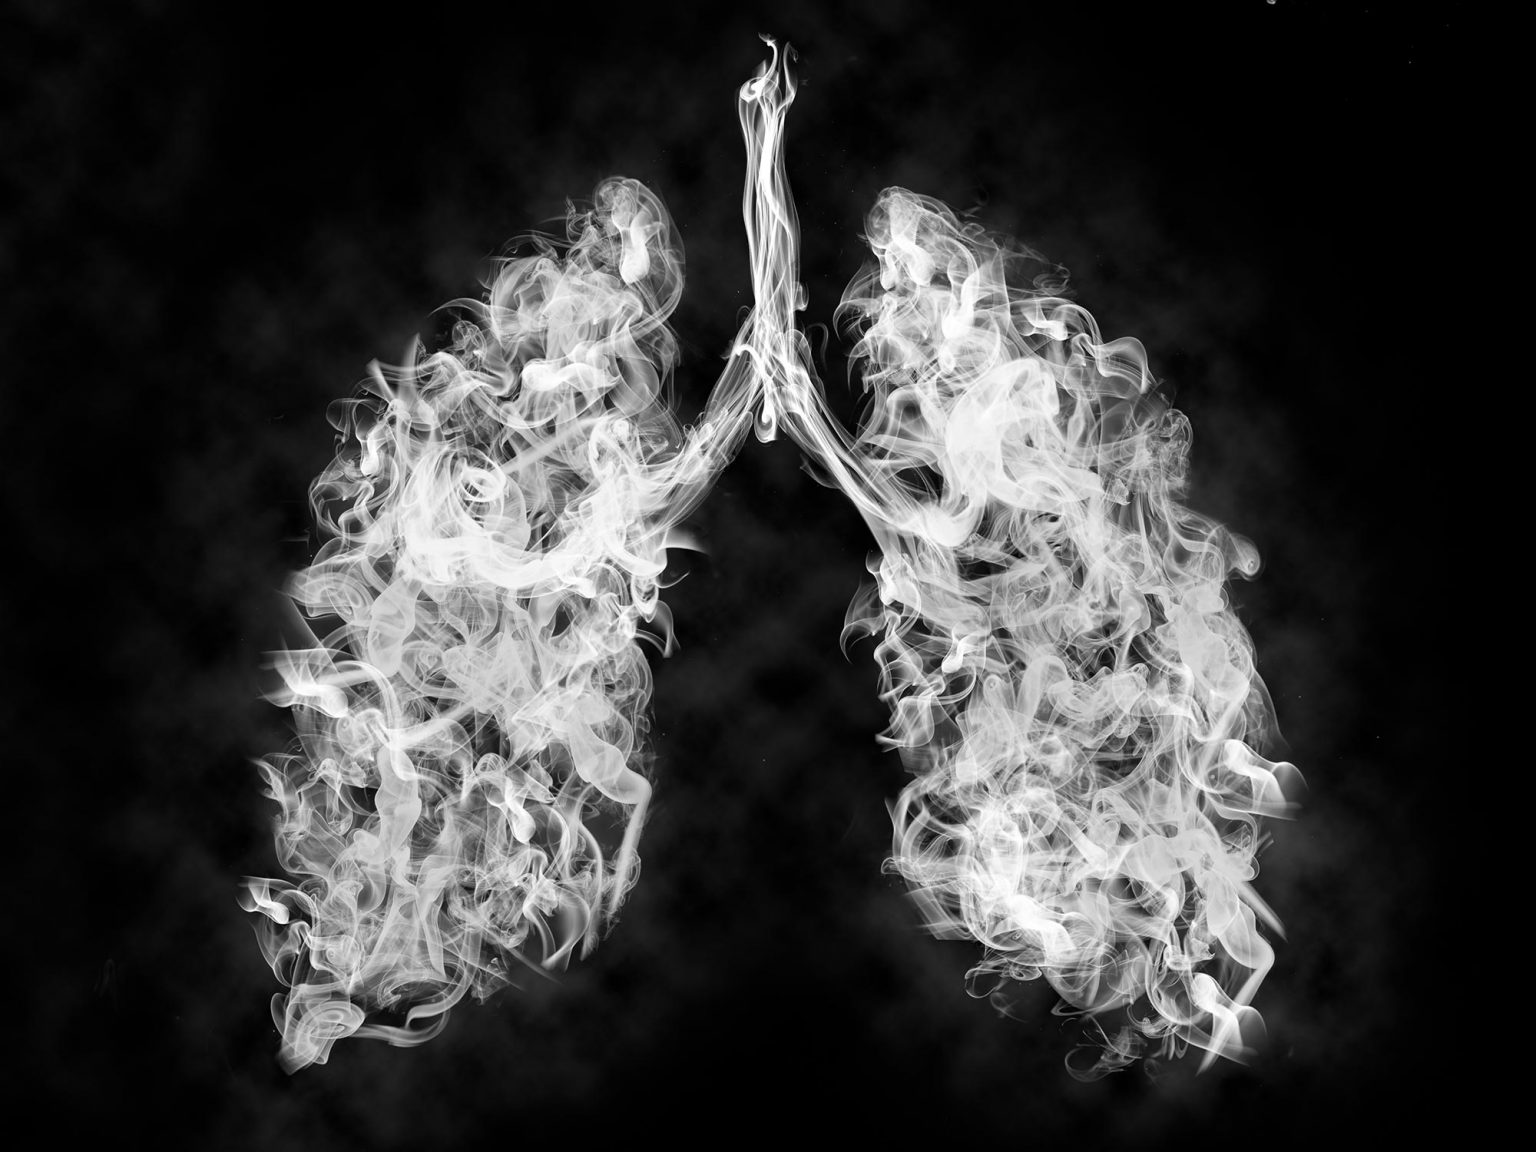 Study Finds New Evidence of Health Threat from Chemicals in Marijuana and Tobacco Smoke